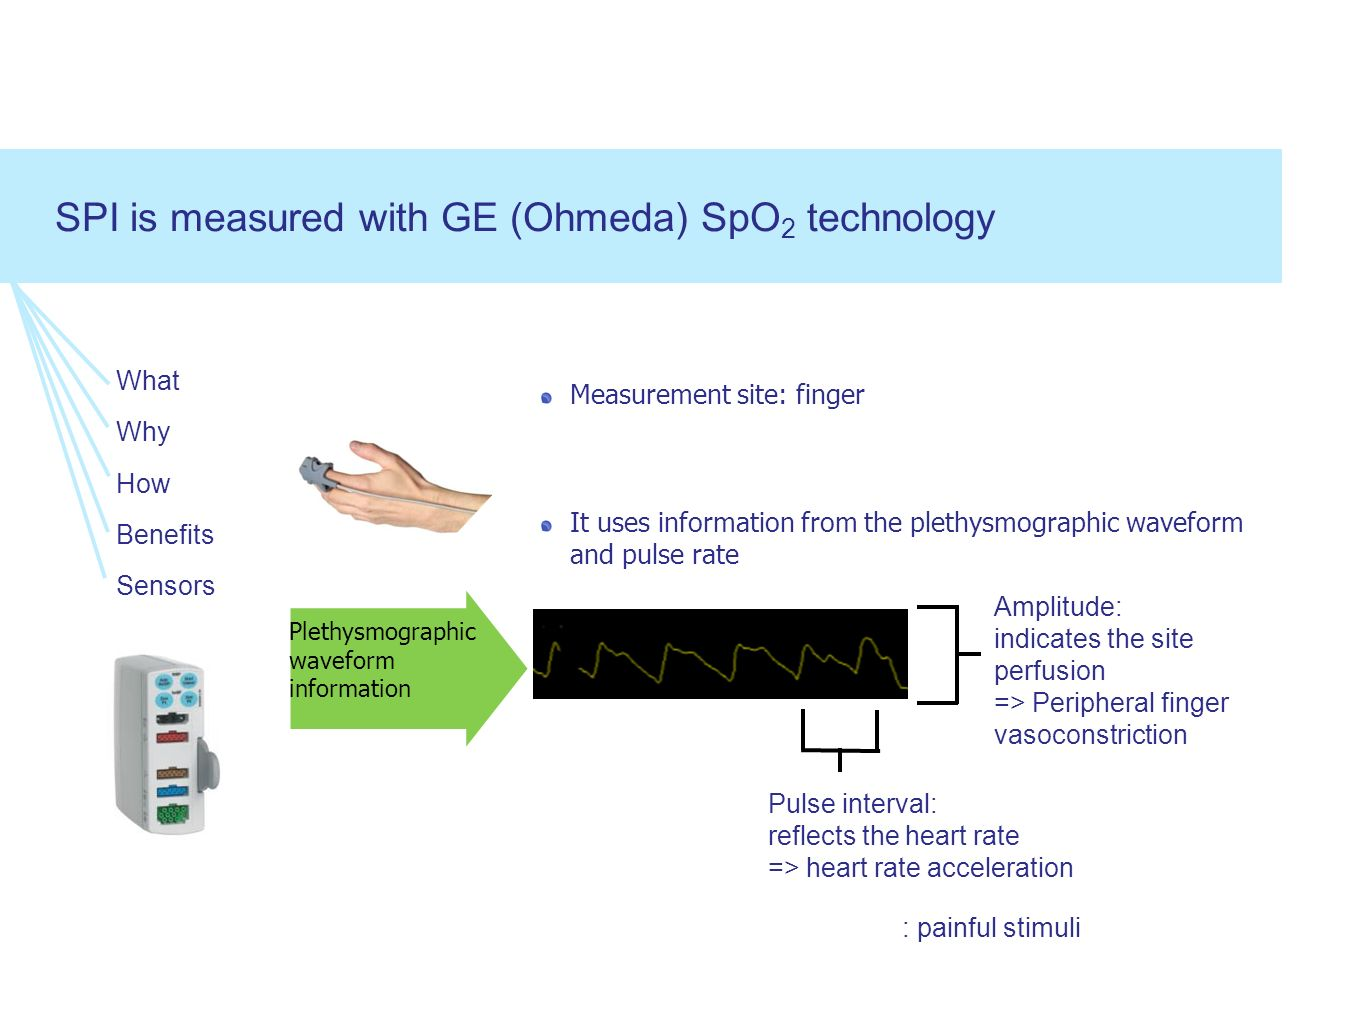 SPI is measured with GE (Ohmeda) SpO2 technology